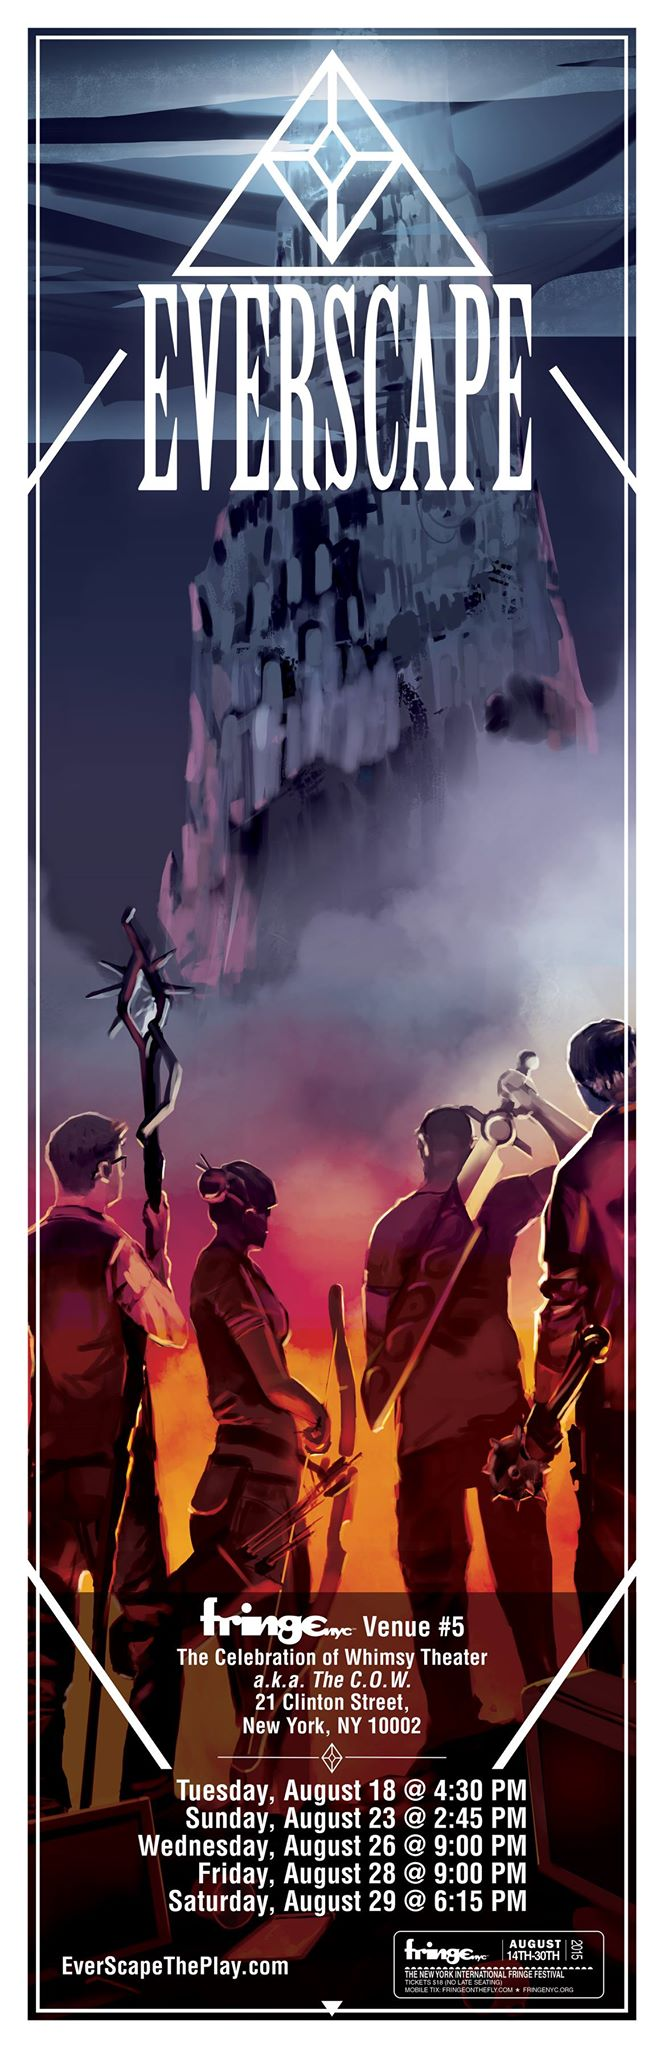 Everscape Poster